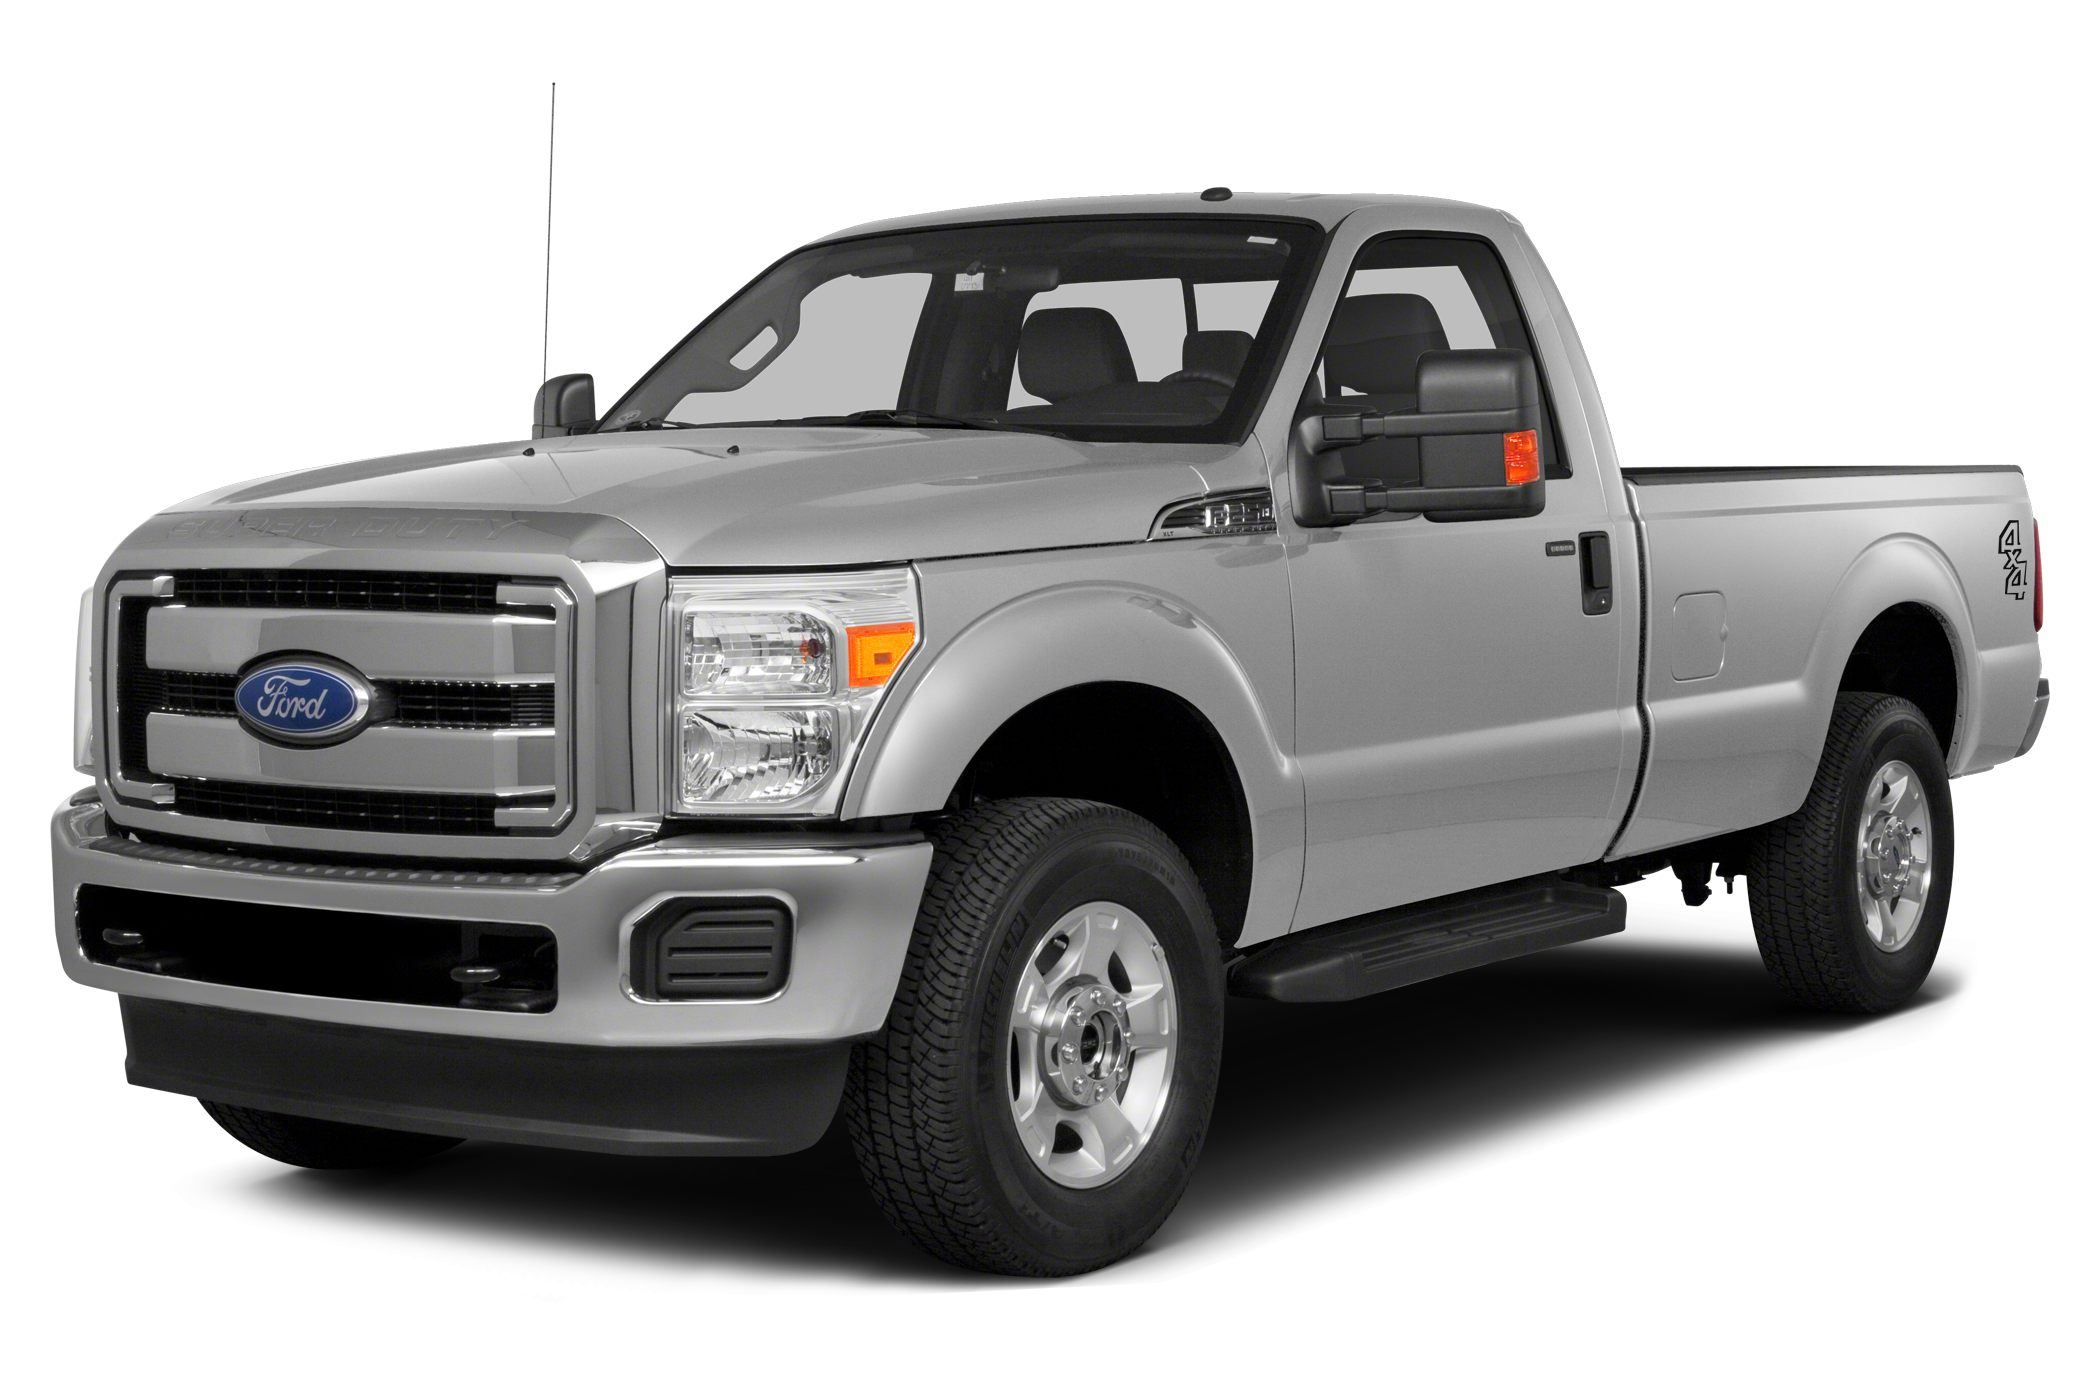 2015 Ford F250 XLT Crew Cab Pickup for sale in Eastland for $50,455 with 3 miles